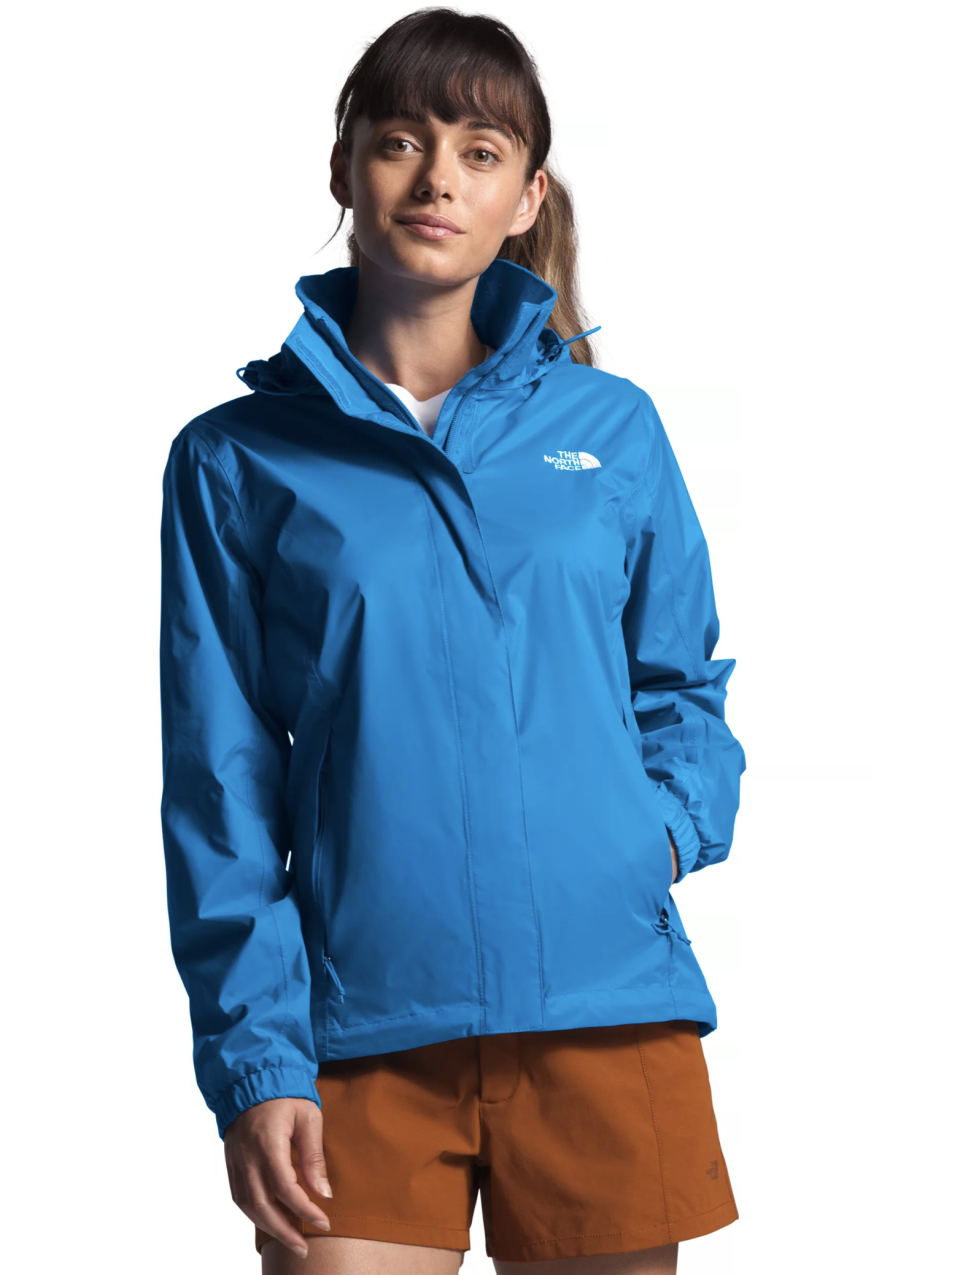 The perfect antidote to chilly, rainy days. (Photo: The North Face)